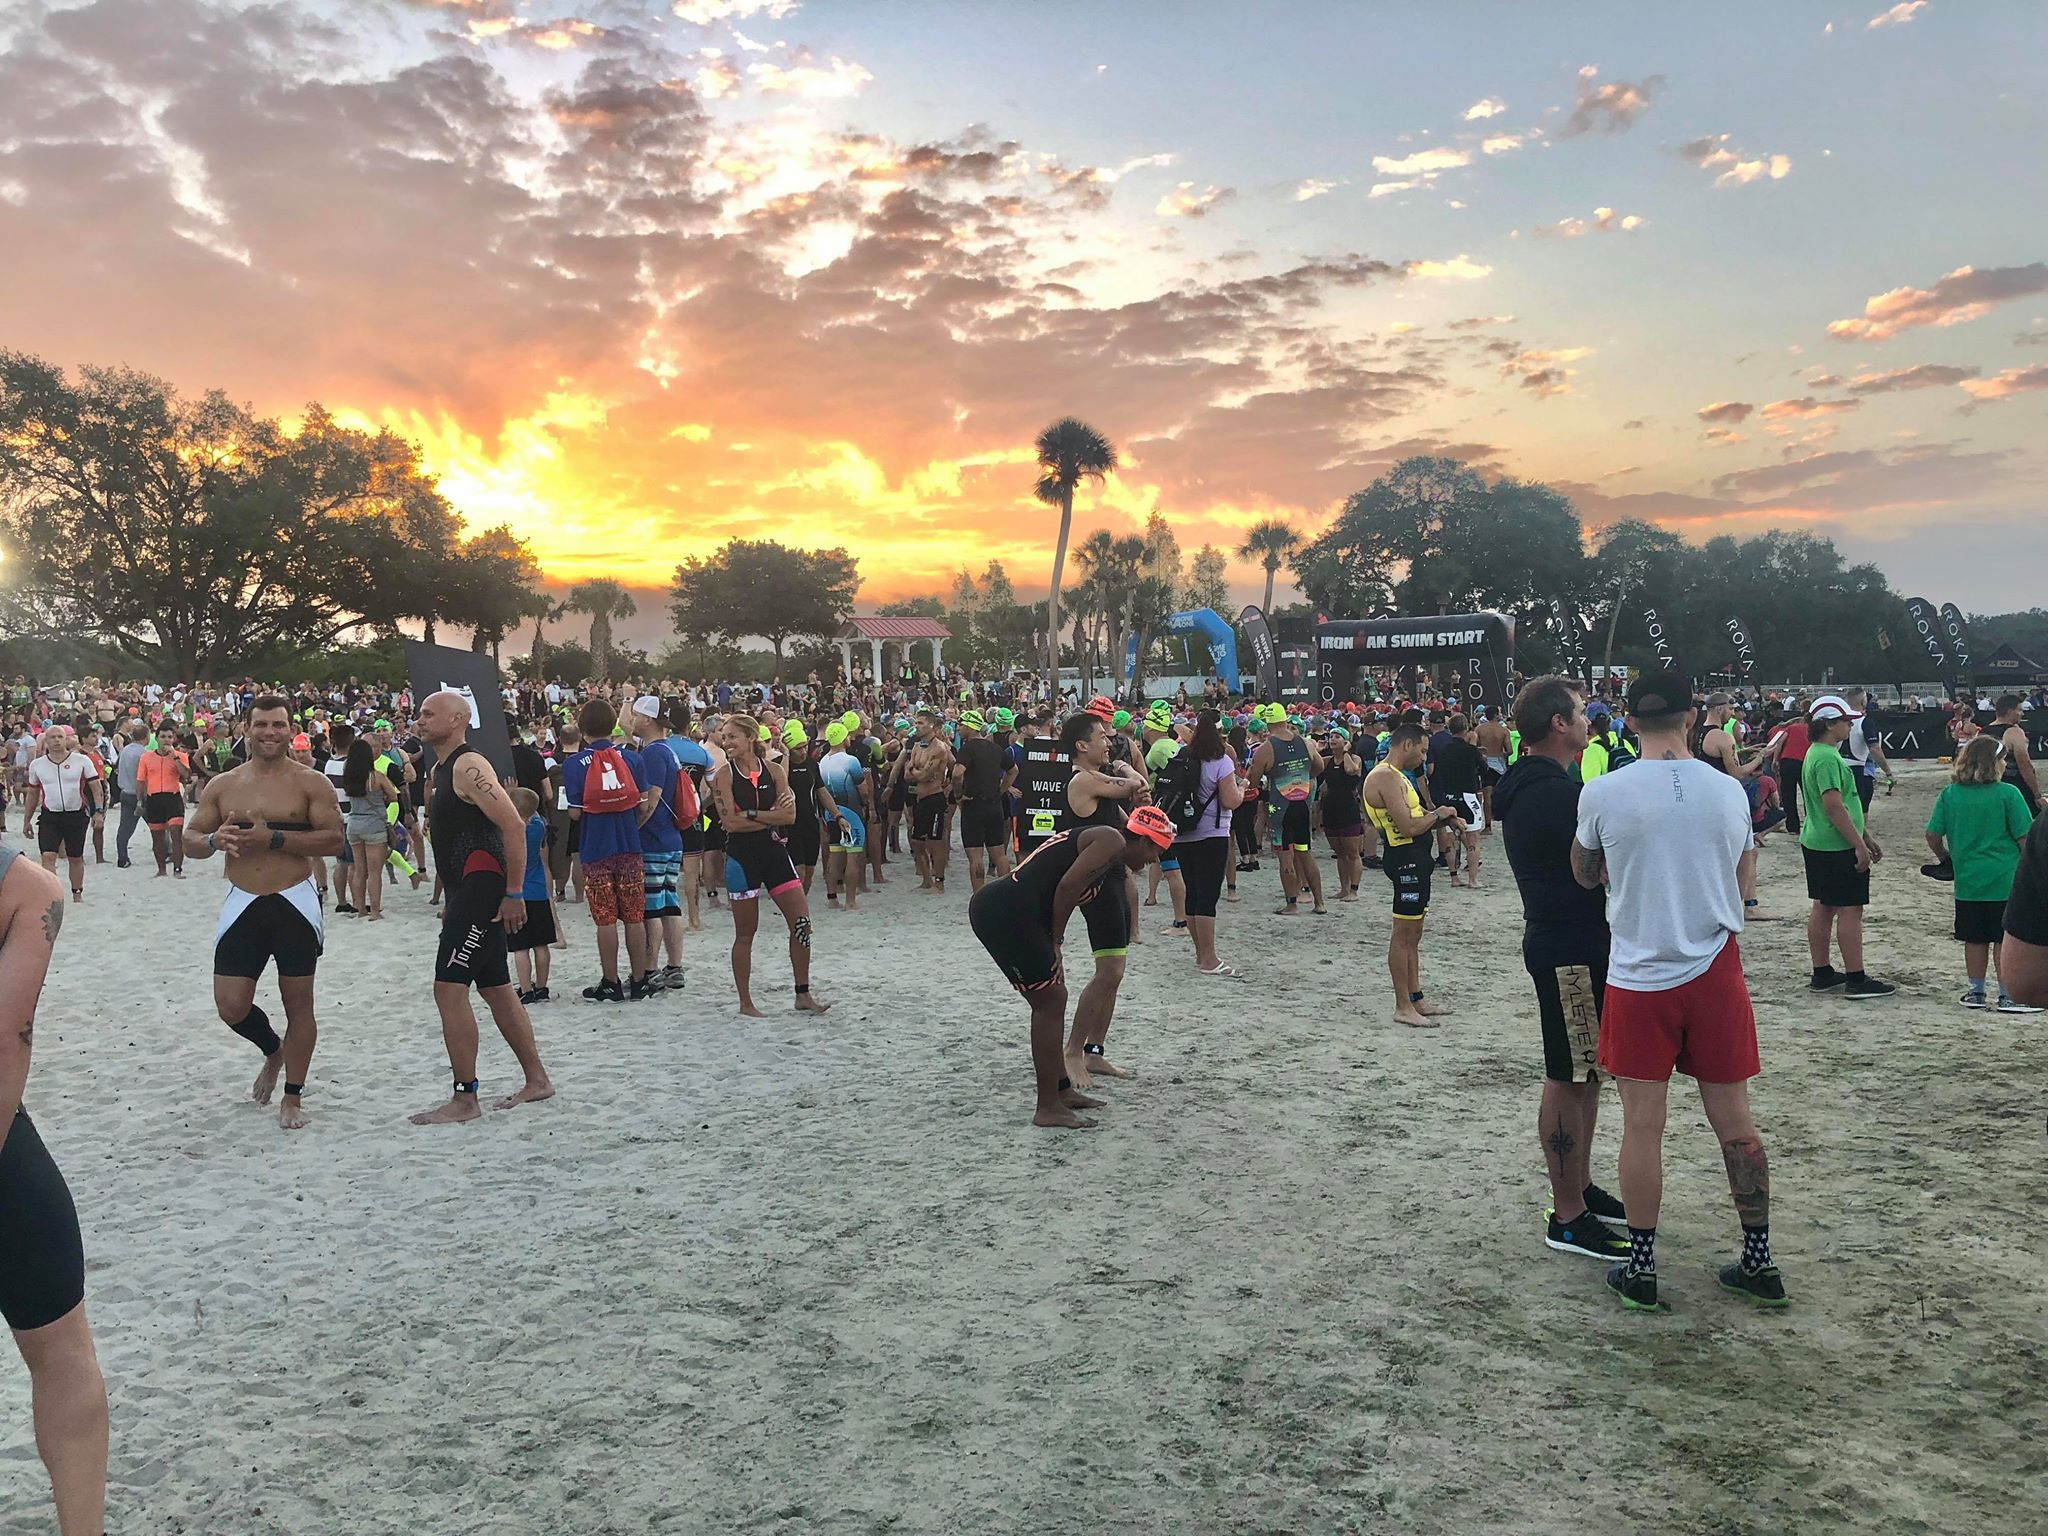 Ironman Florida 70.3 - Start Line